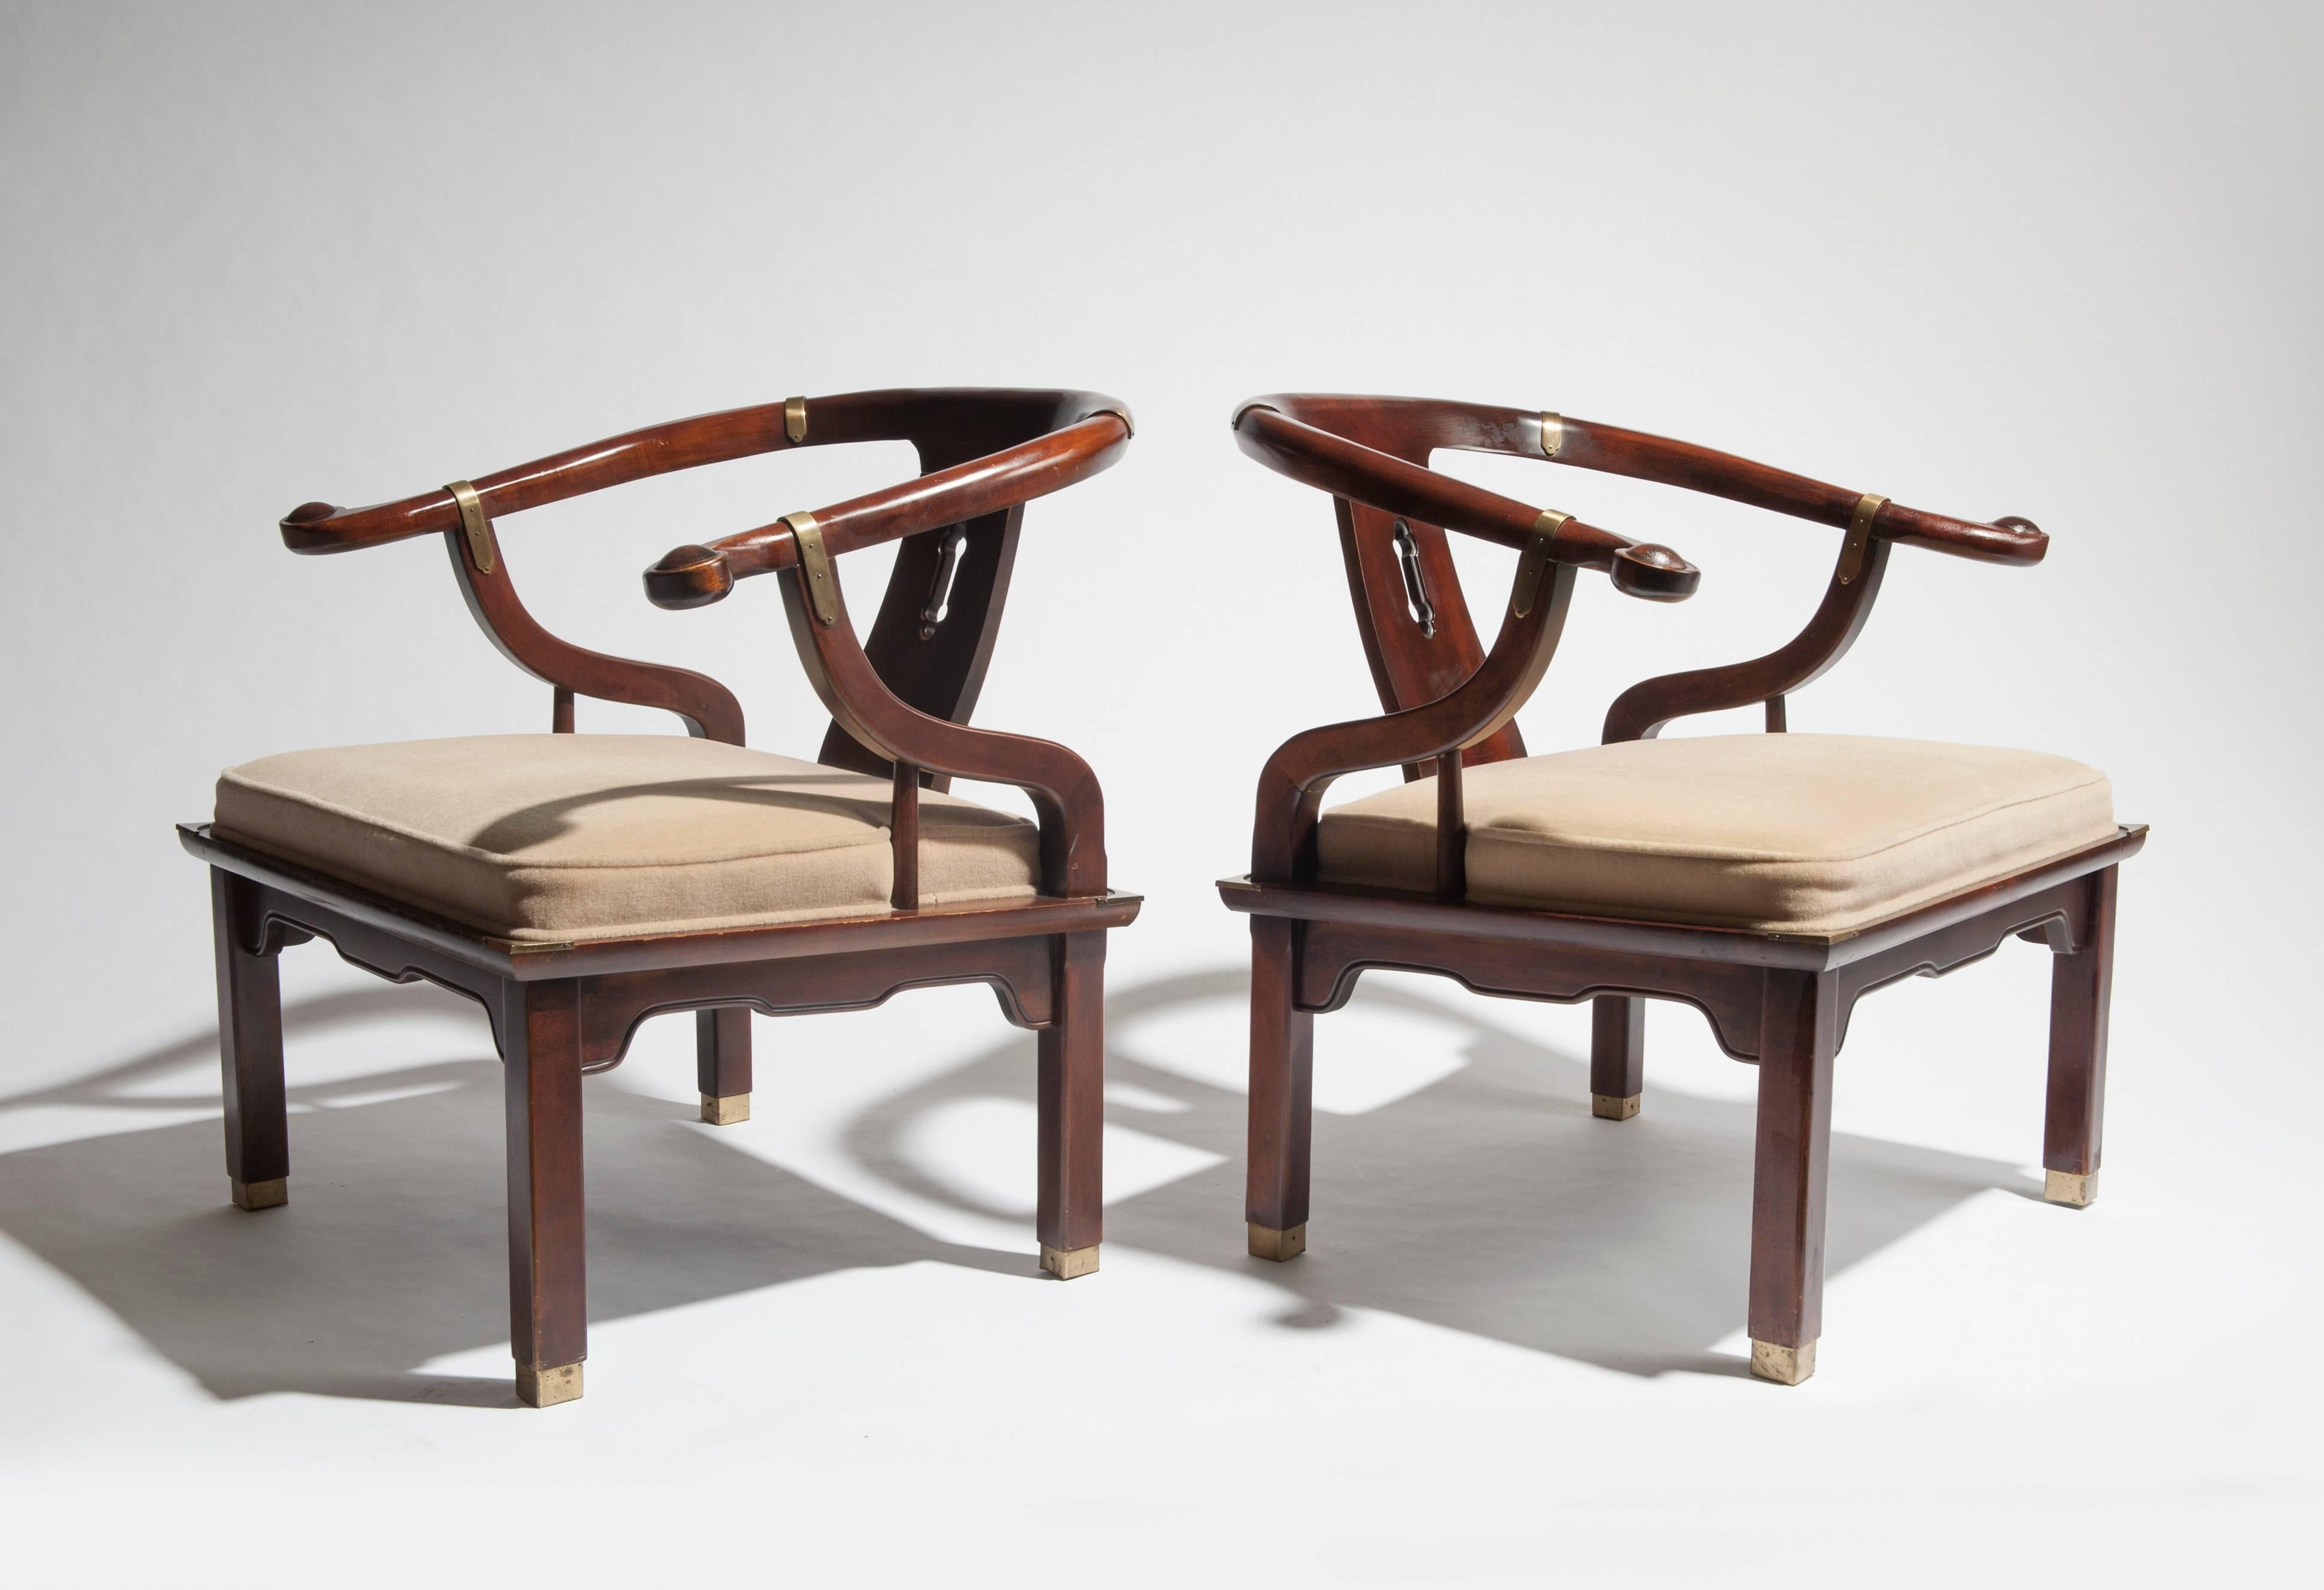 Appealing Pair Of Asian Ming Inspired Lounge Chairs By Century Furniture Of  North Carolina. Chairs